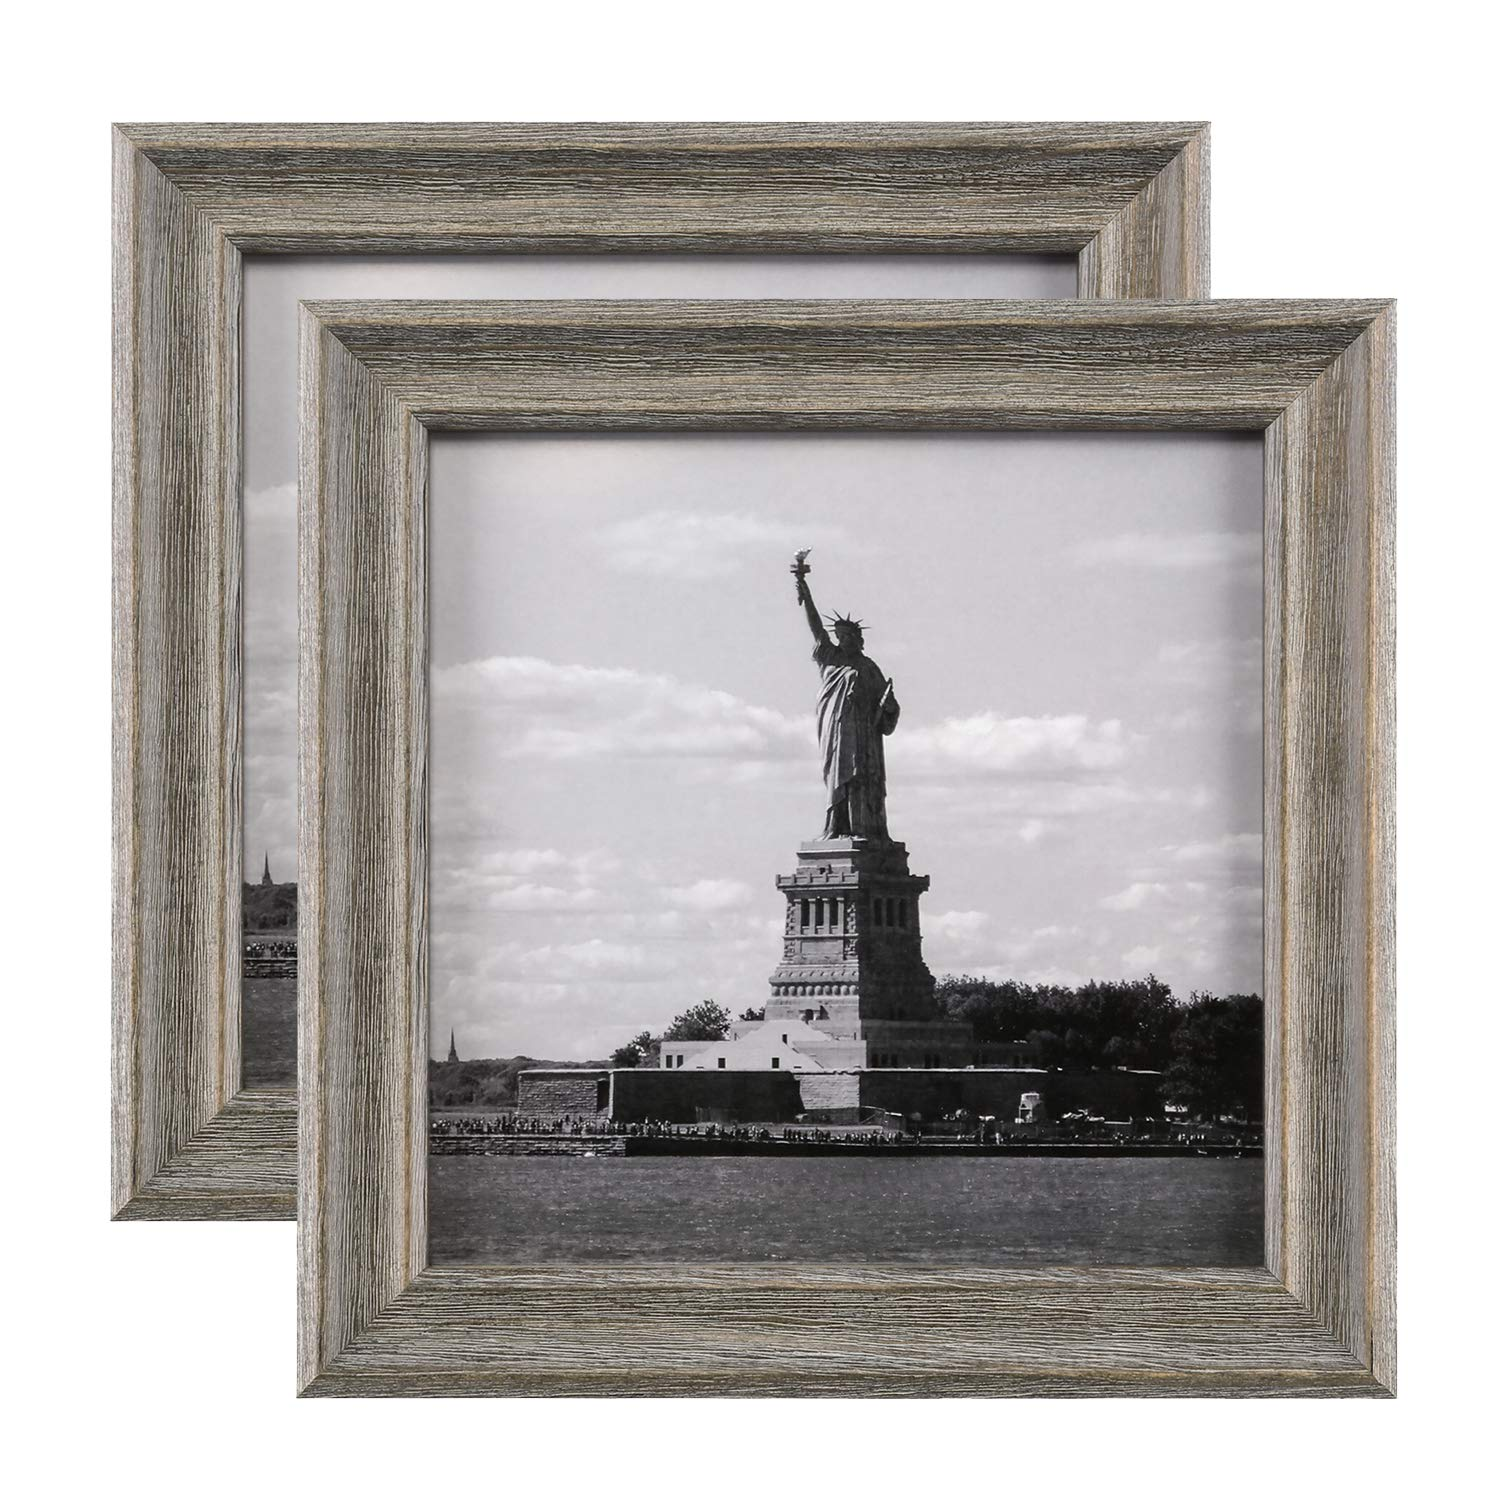 ONE WALL 8x8 Rustic Wood Picture Frame Pack of 2 for Photo, Print Painting, Pinewood Frame with Real Glass for Wall and Tabletop - Mounting Hardware Included, Light Brown